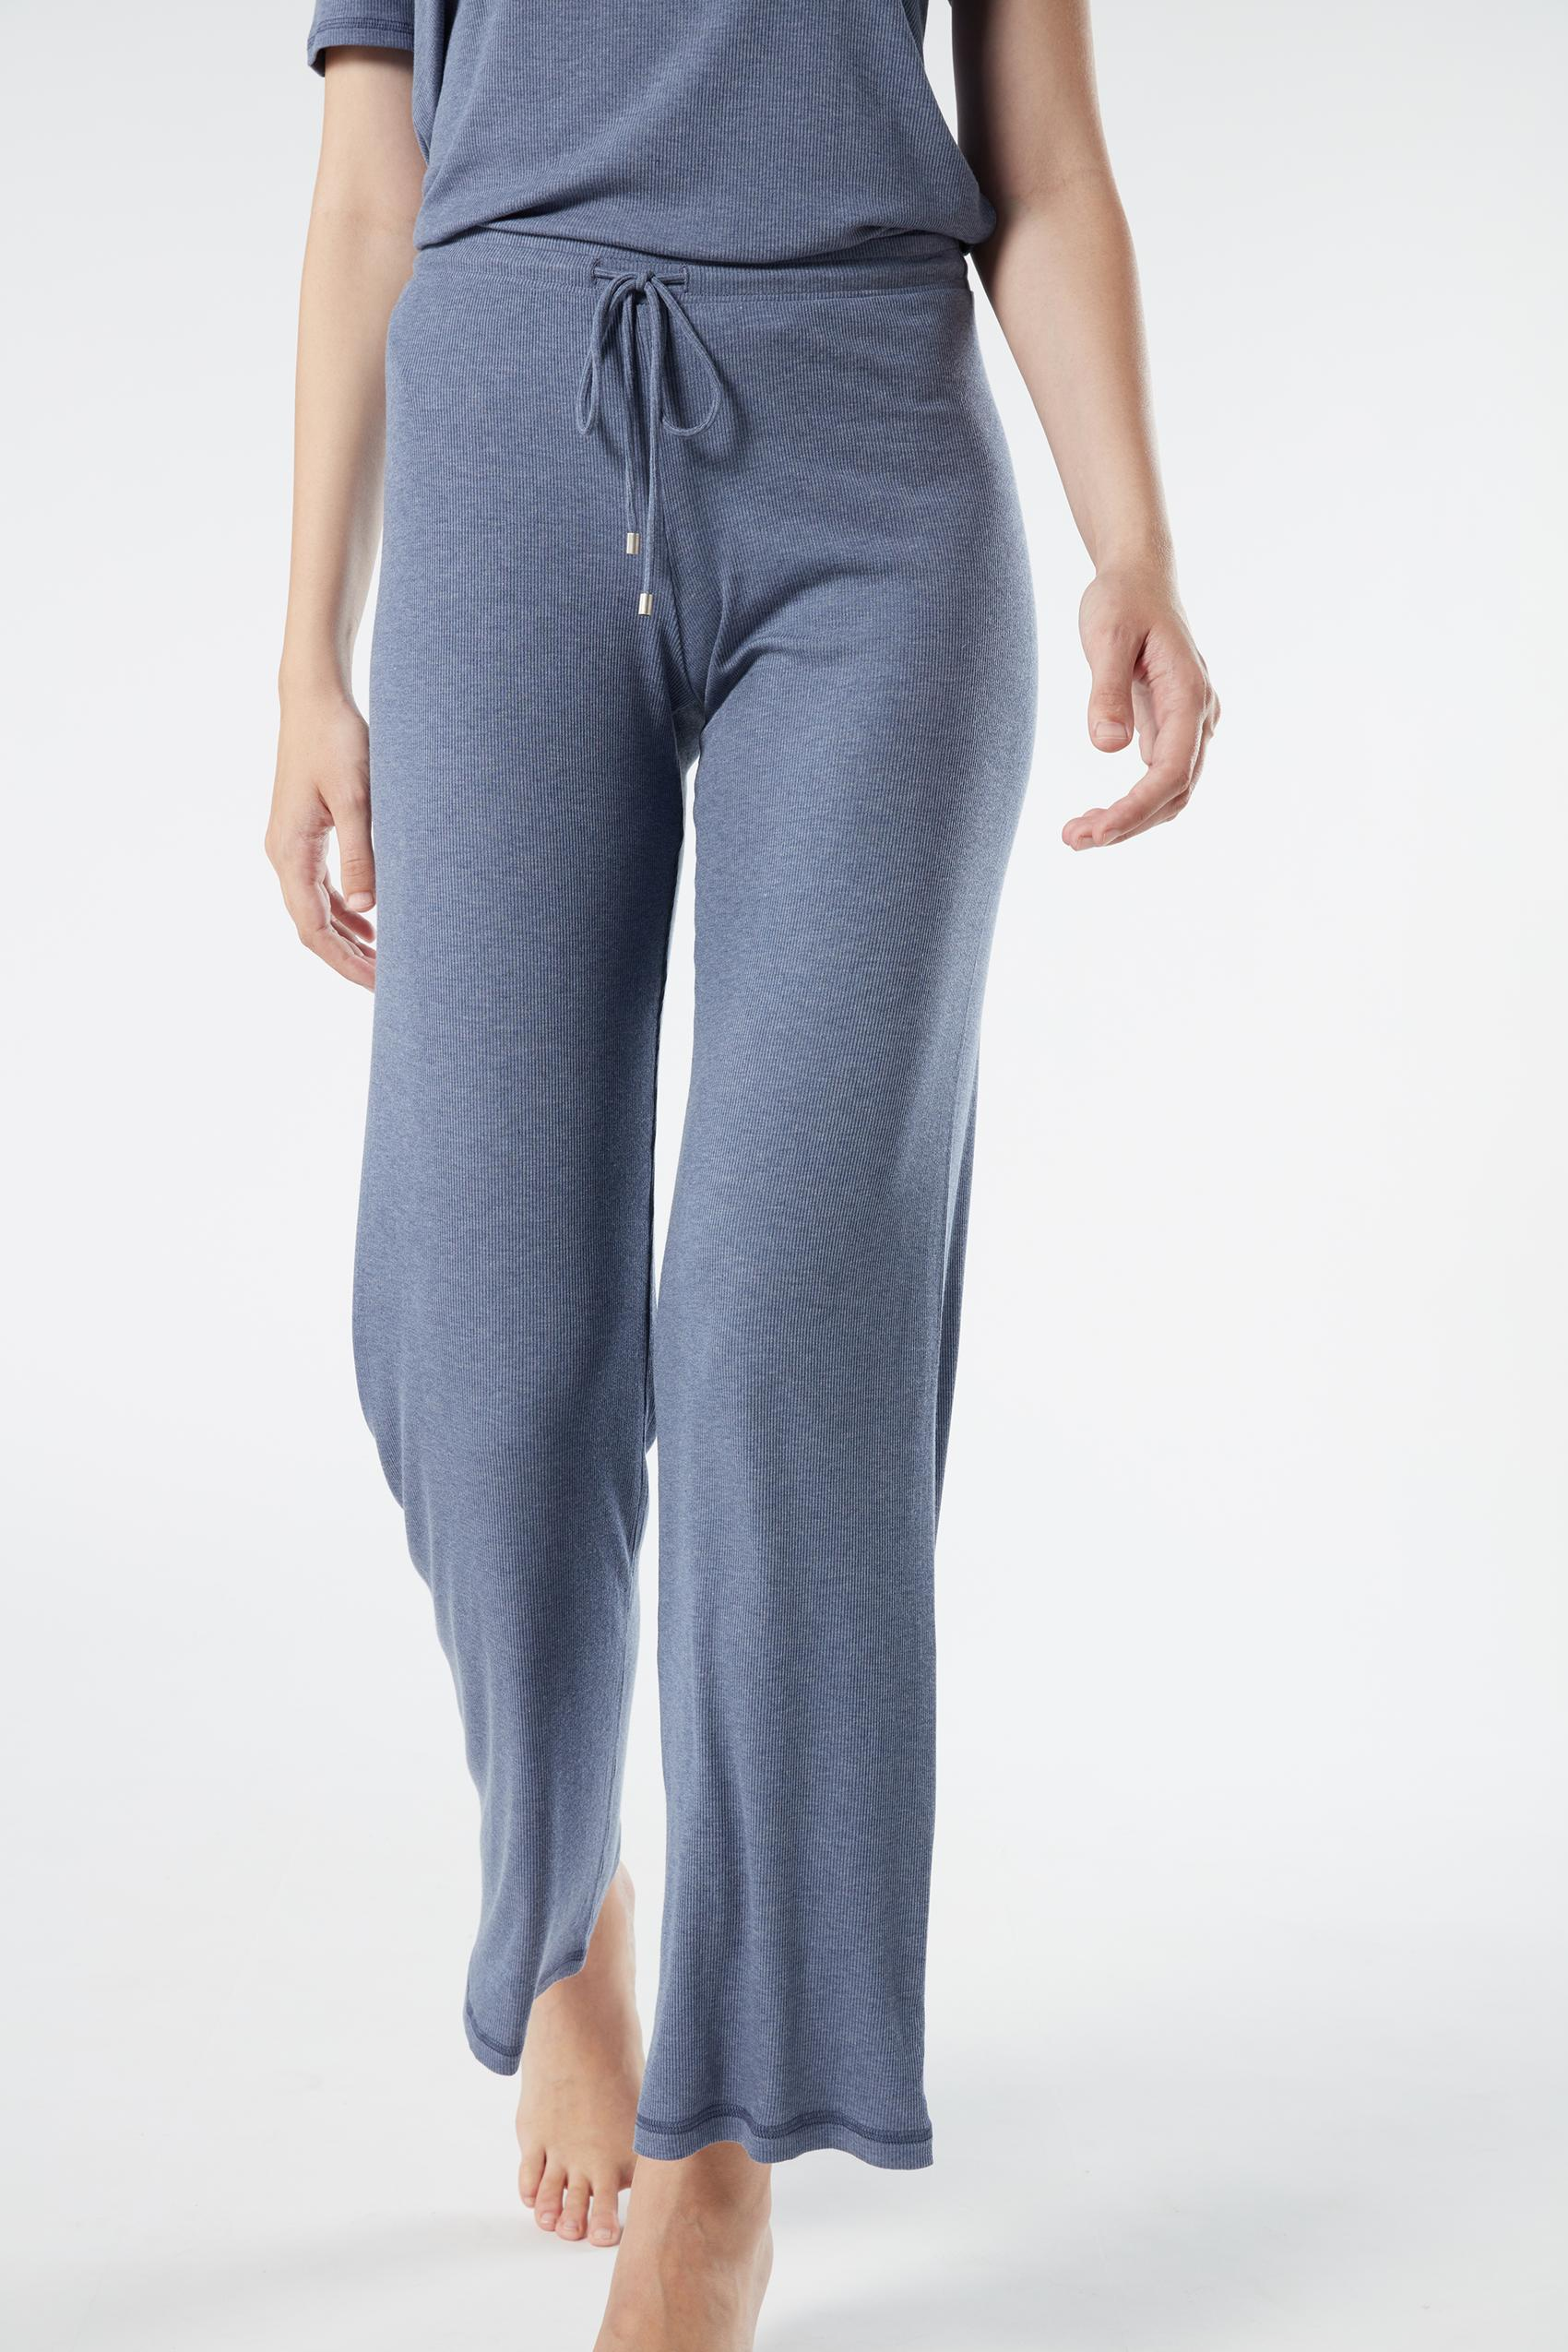 Intimissimi Ribbed Modal Blend Wide-Leg Trousers